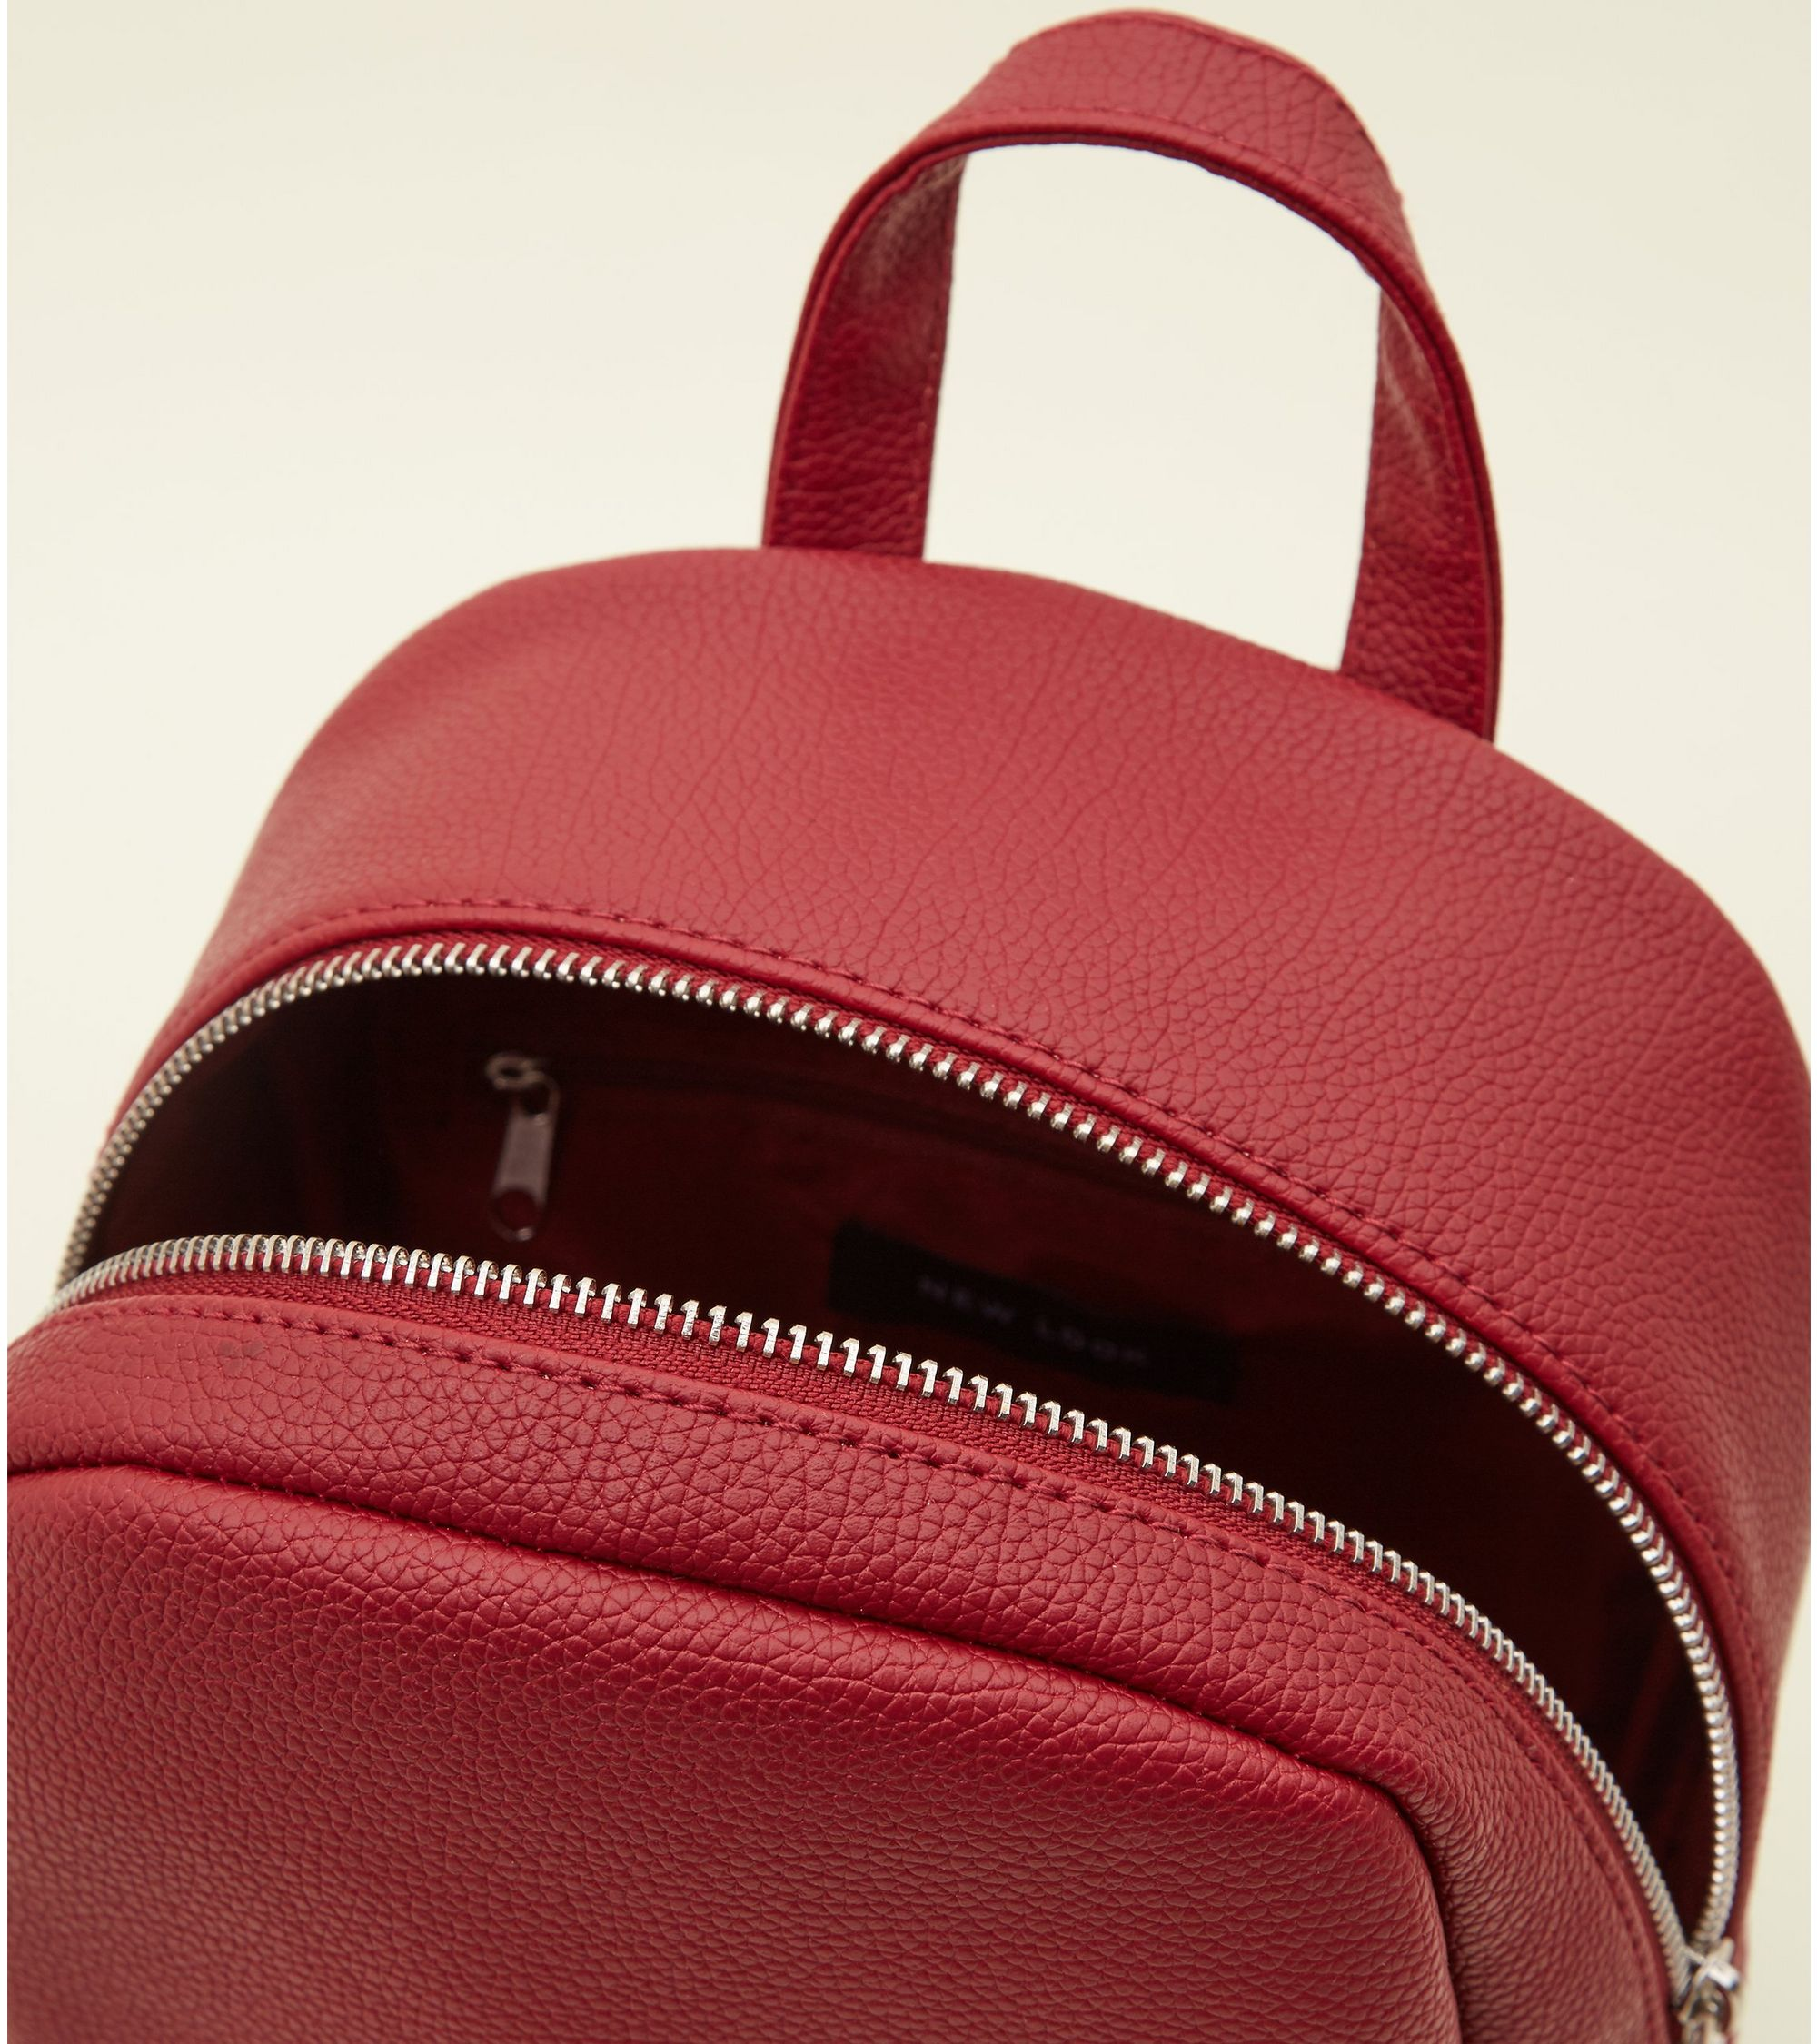 dcf4101771 New Look Dark Red Zip Top Curved Mini Backpack at £19.99